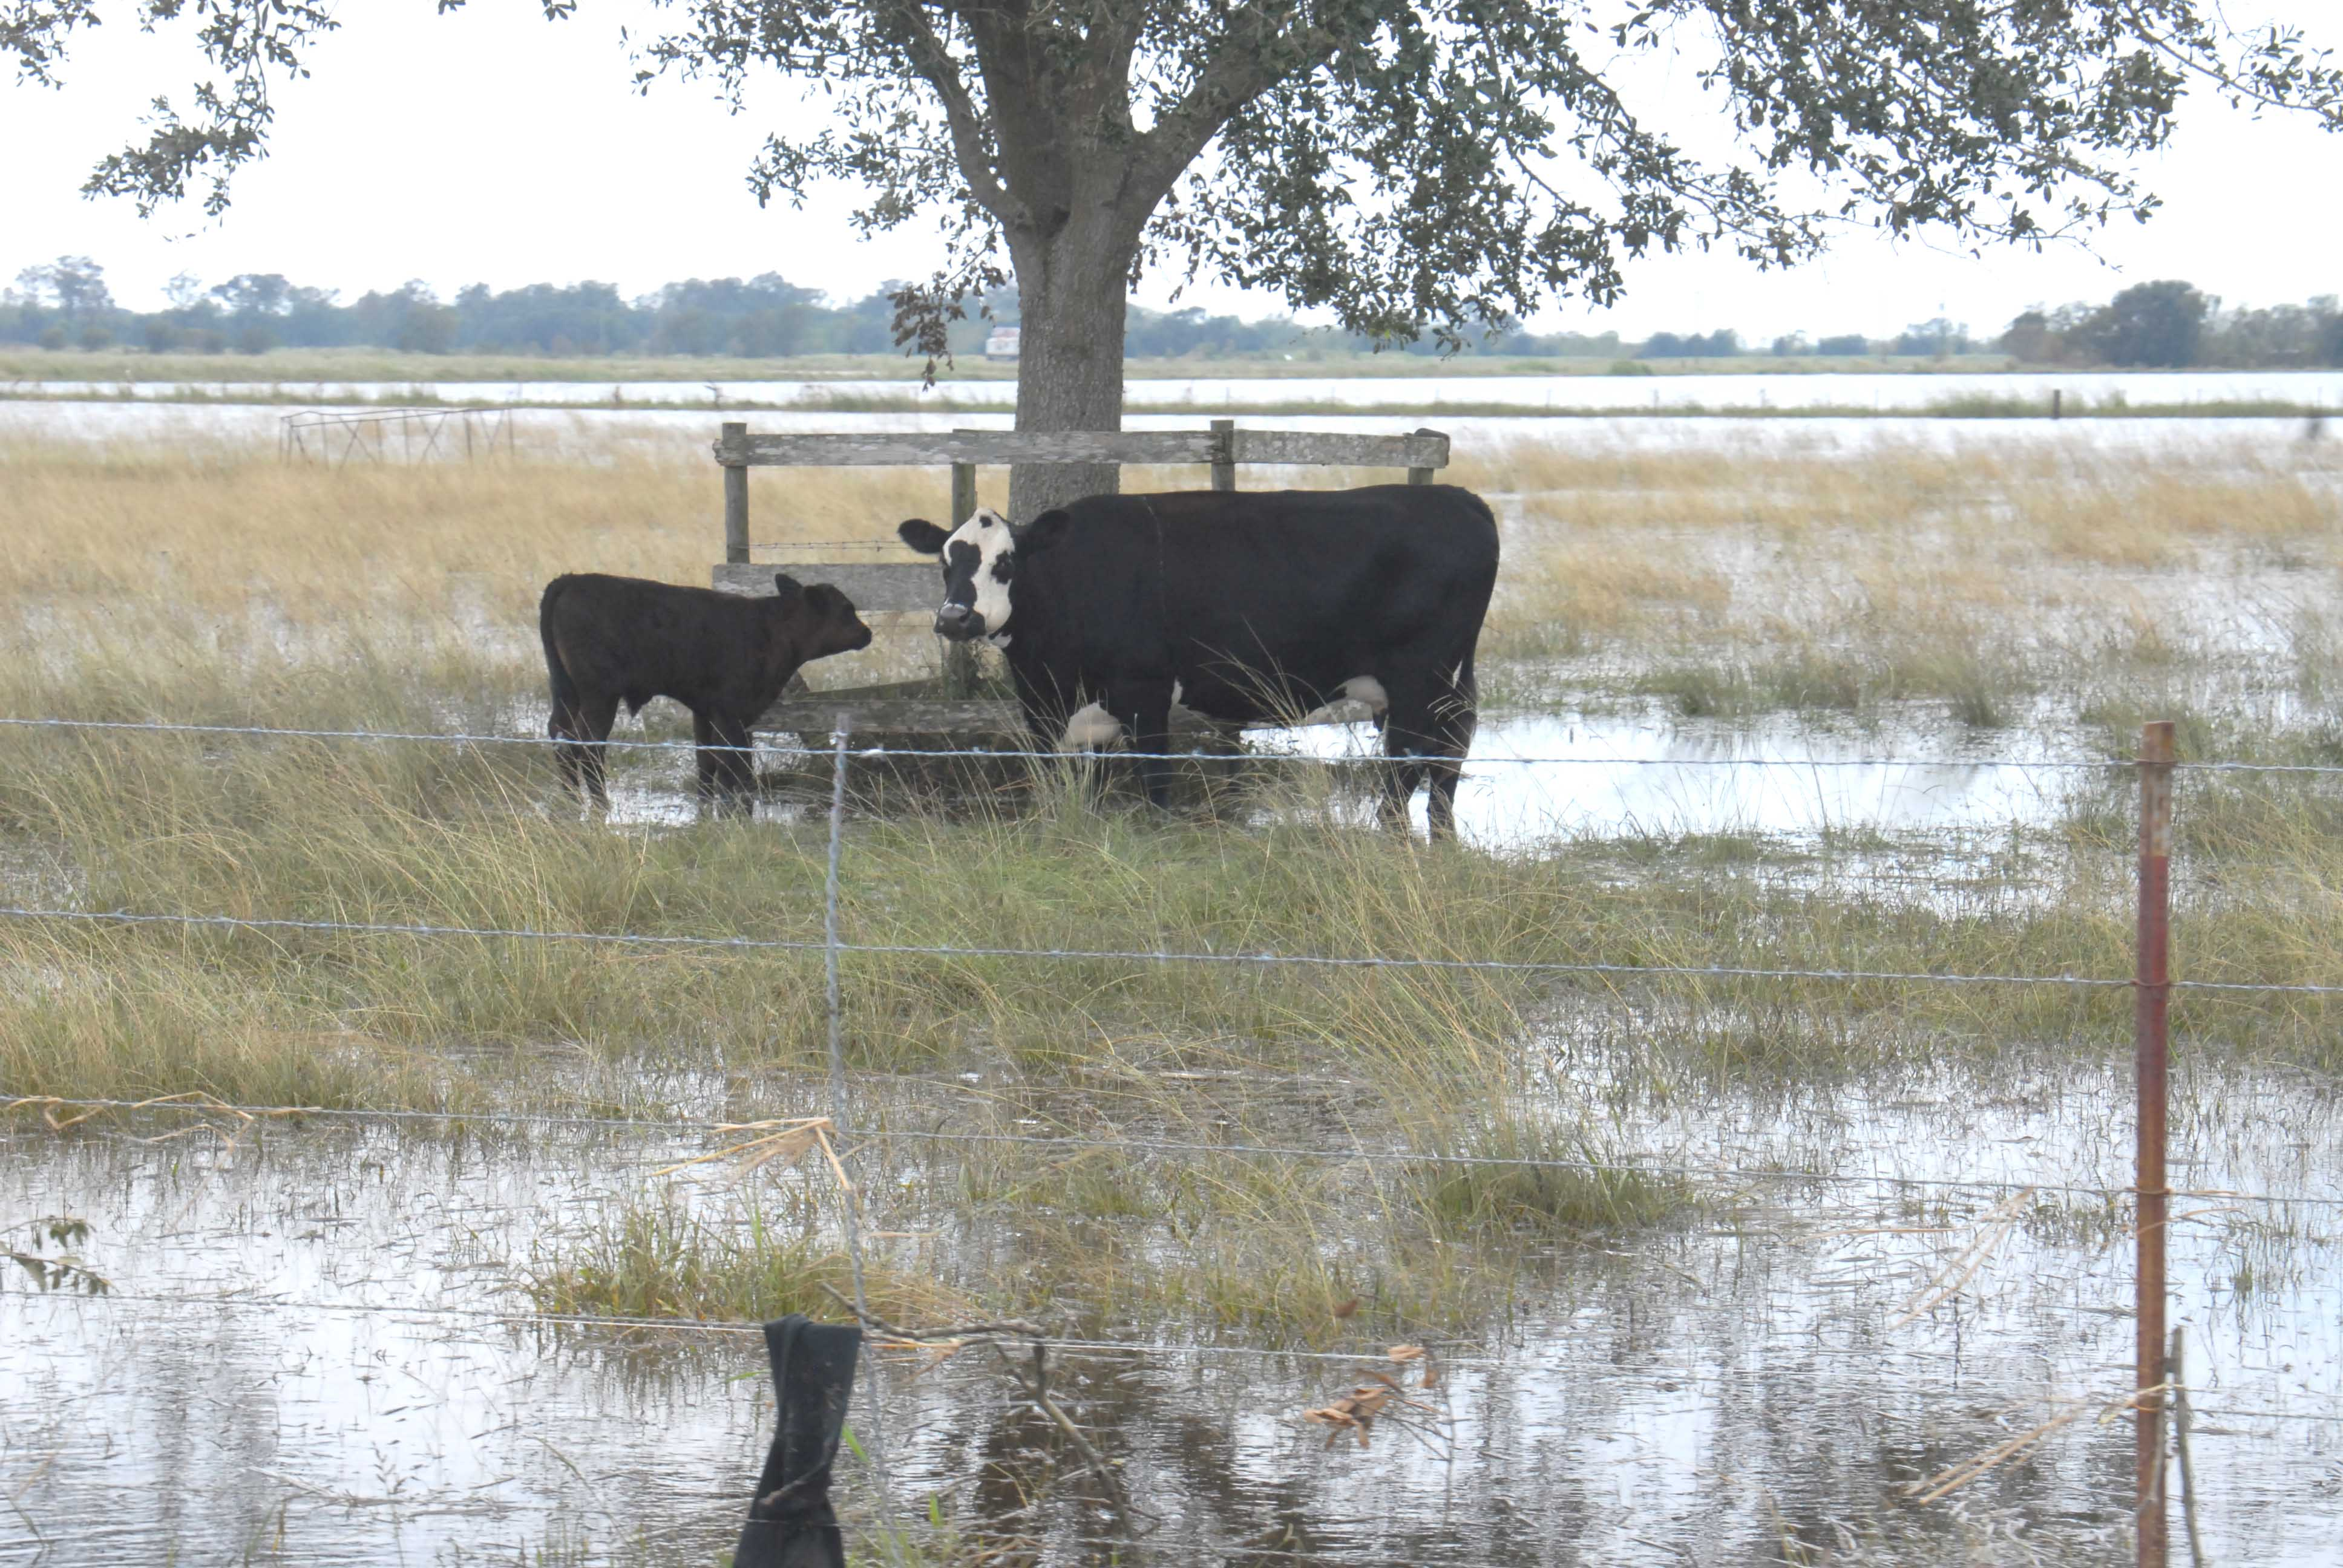 Flood recovery grants approved for farmers